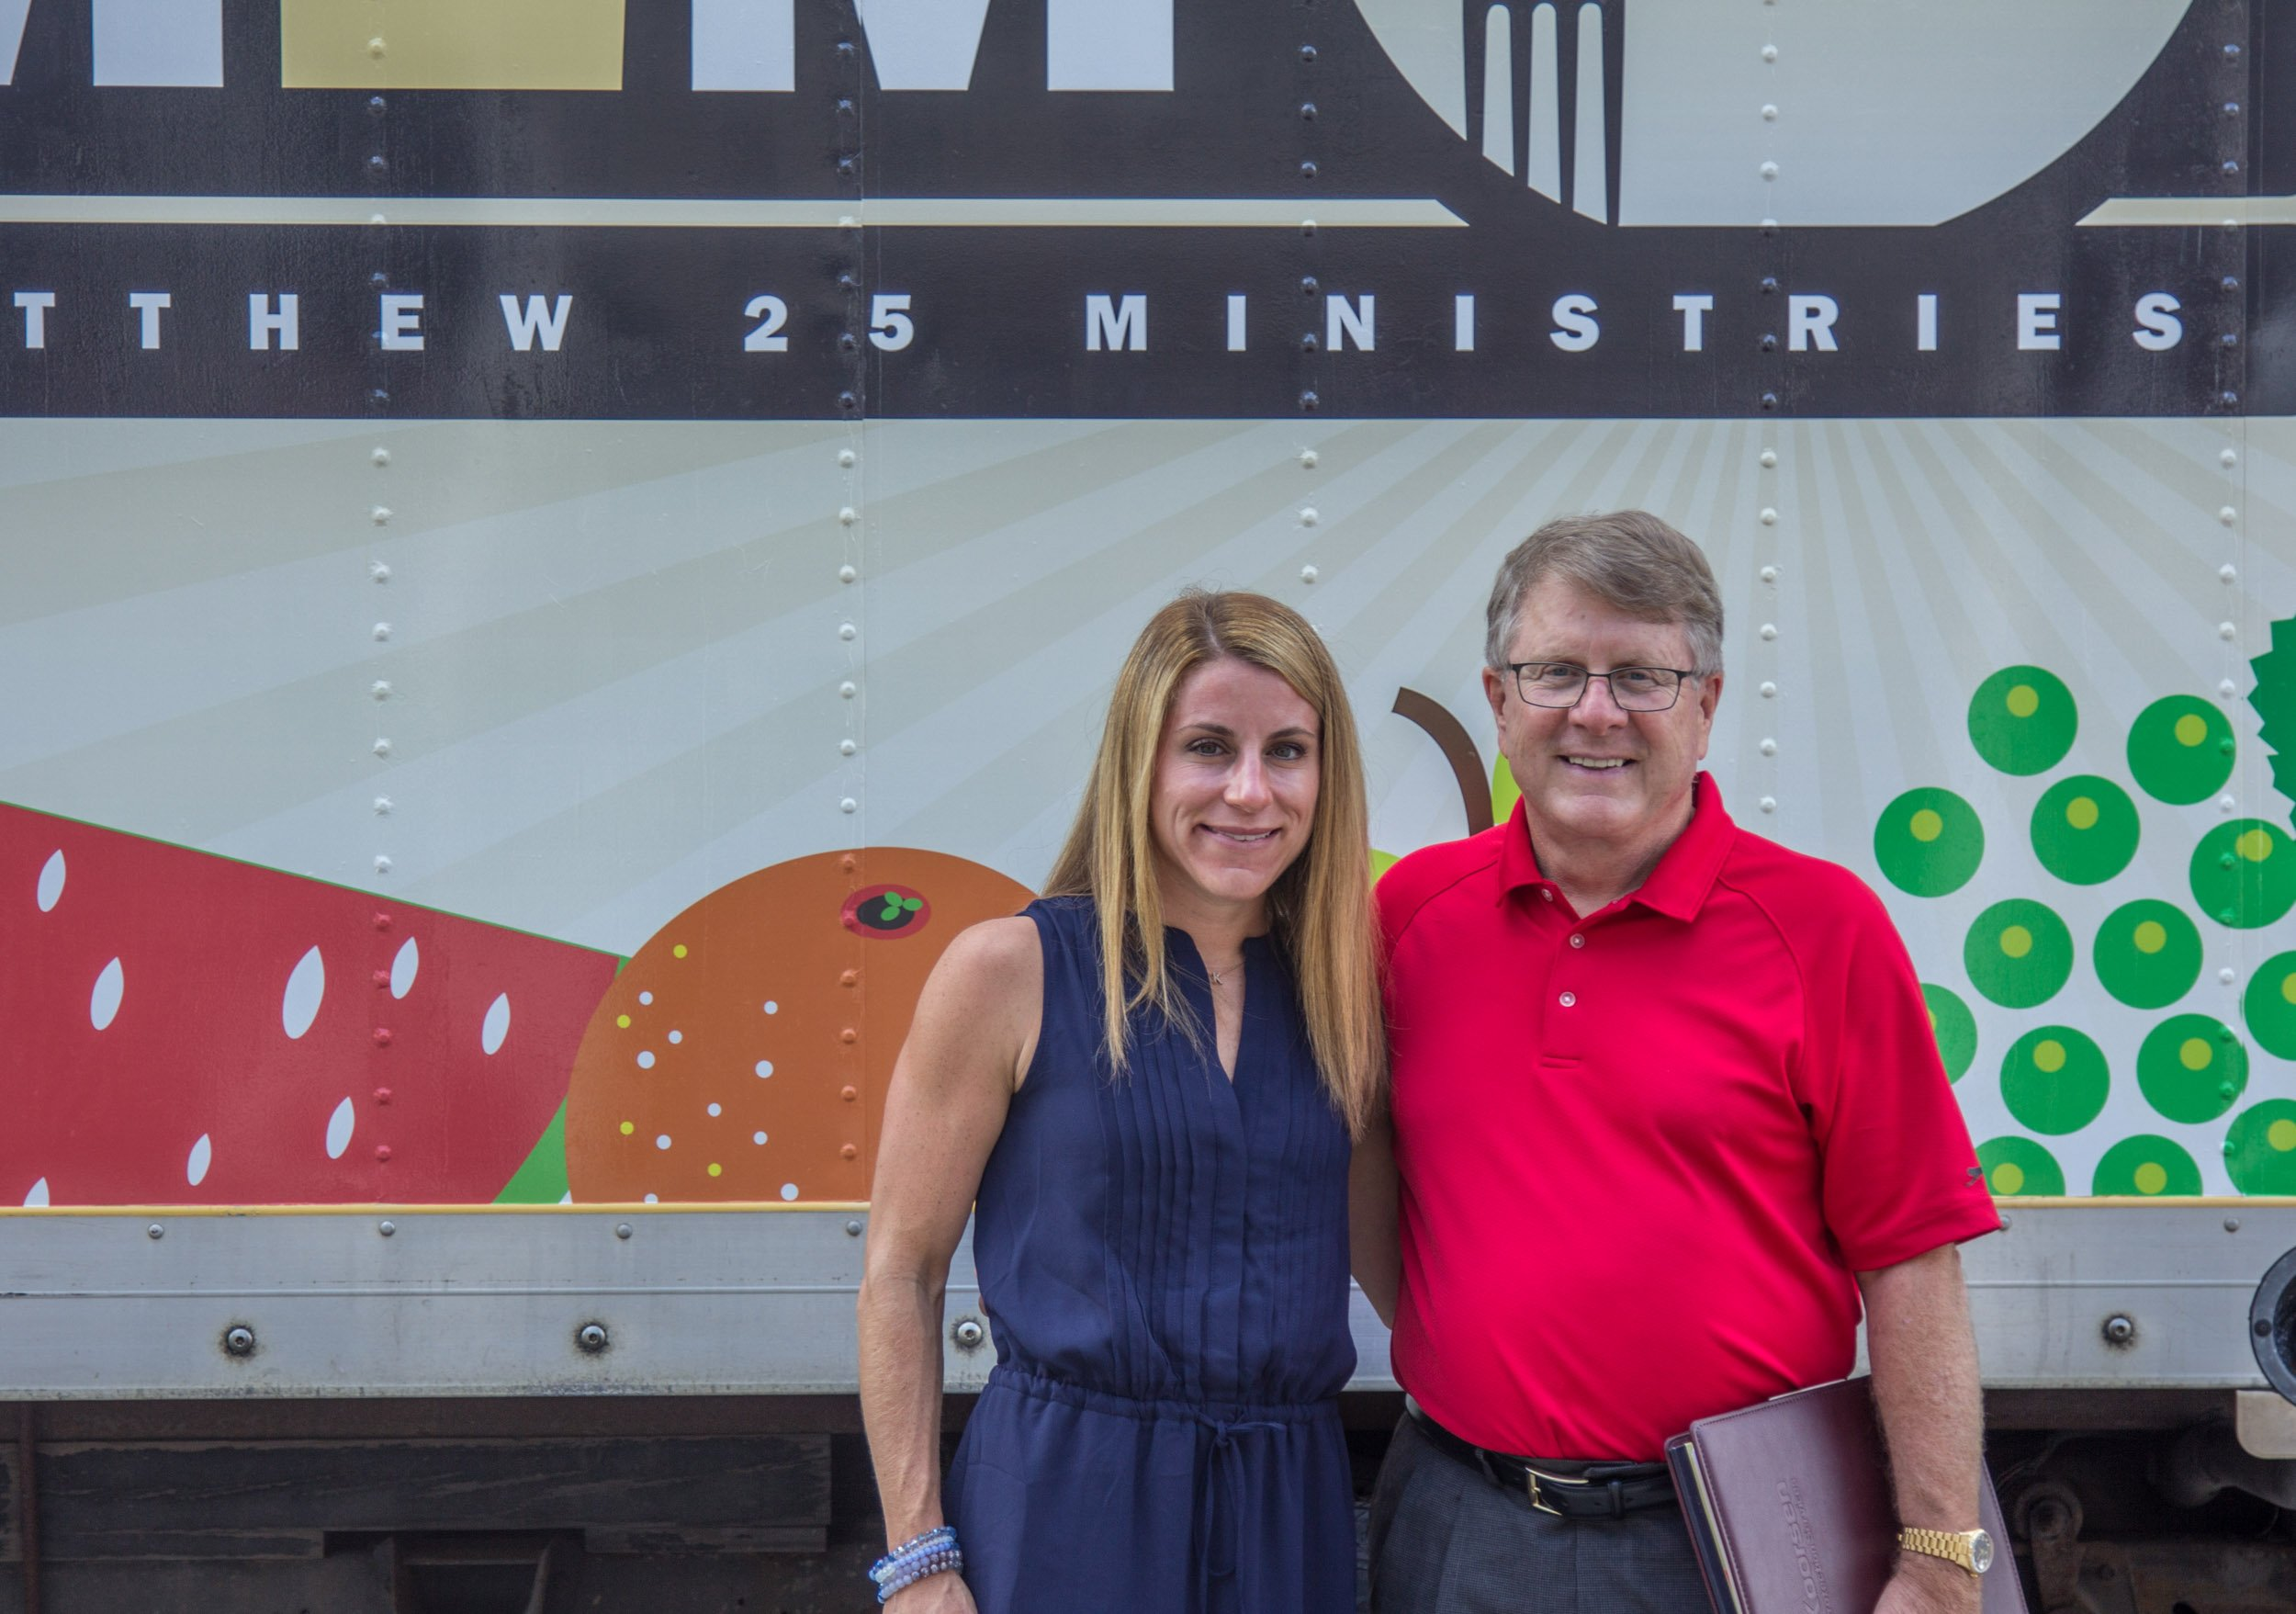 Koorsen Family Foundation Joins WISH Patrol in Supporting M2M Ministry - Kelly and Randy